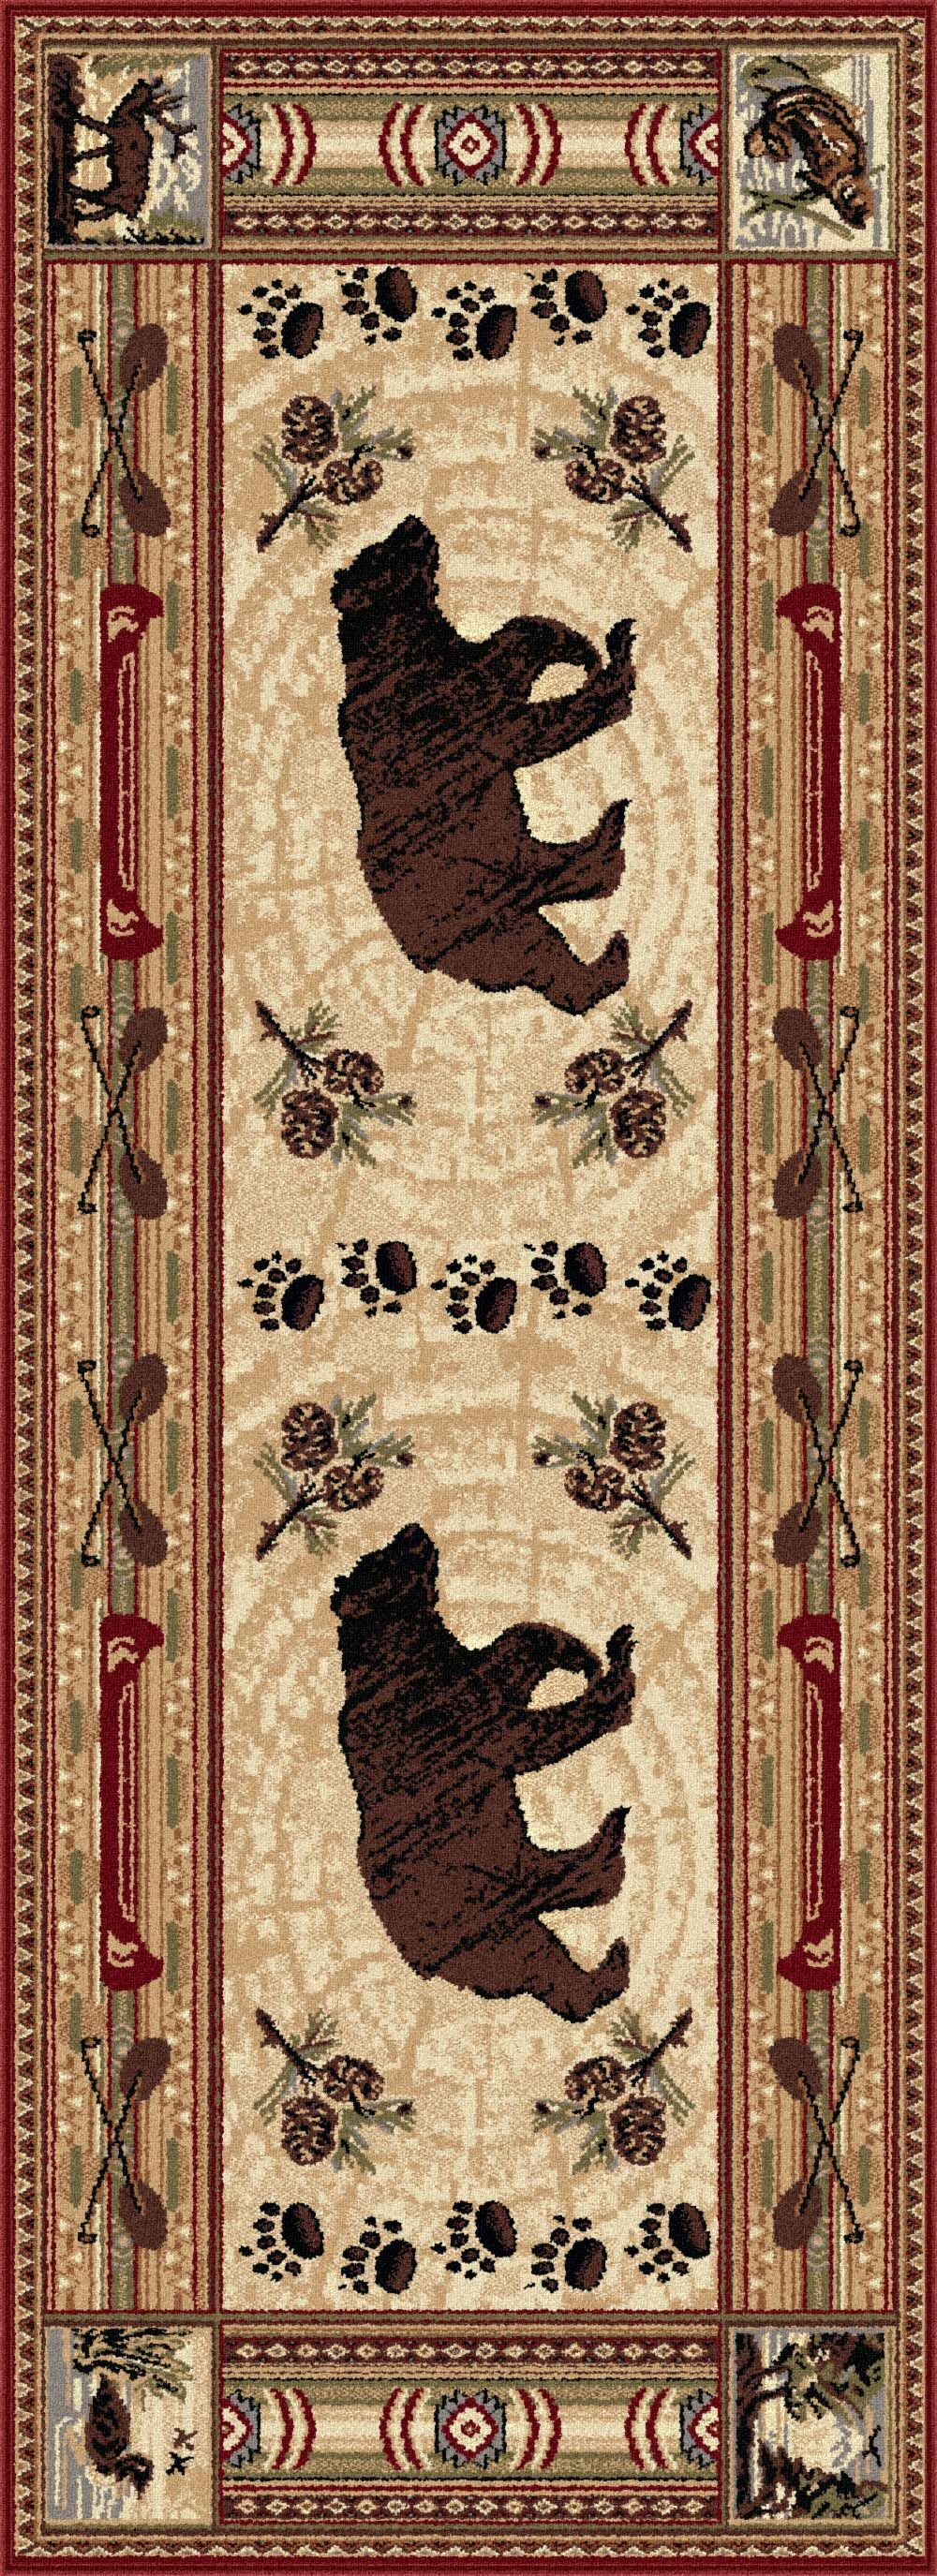 Russel Brown Area Rug Rug Size: 2'7'' x 7'3''